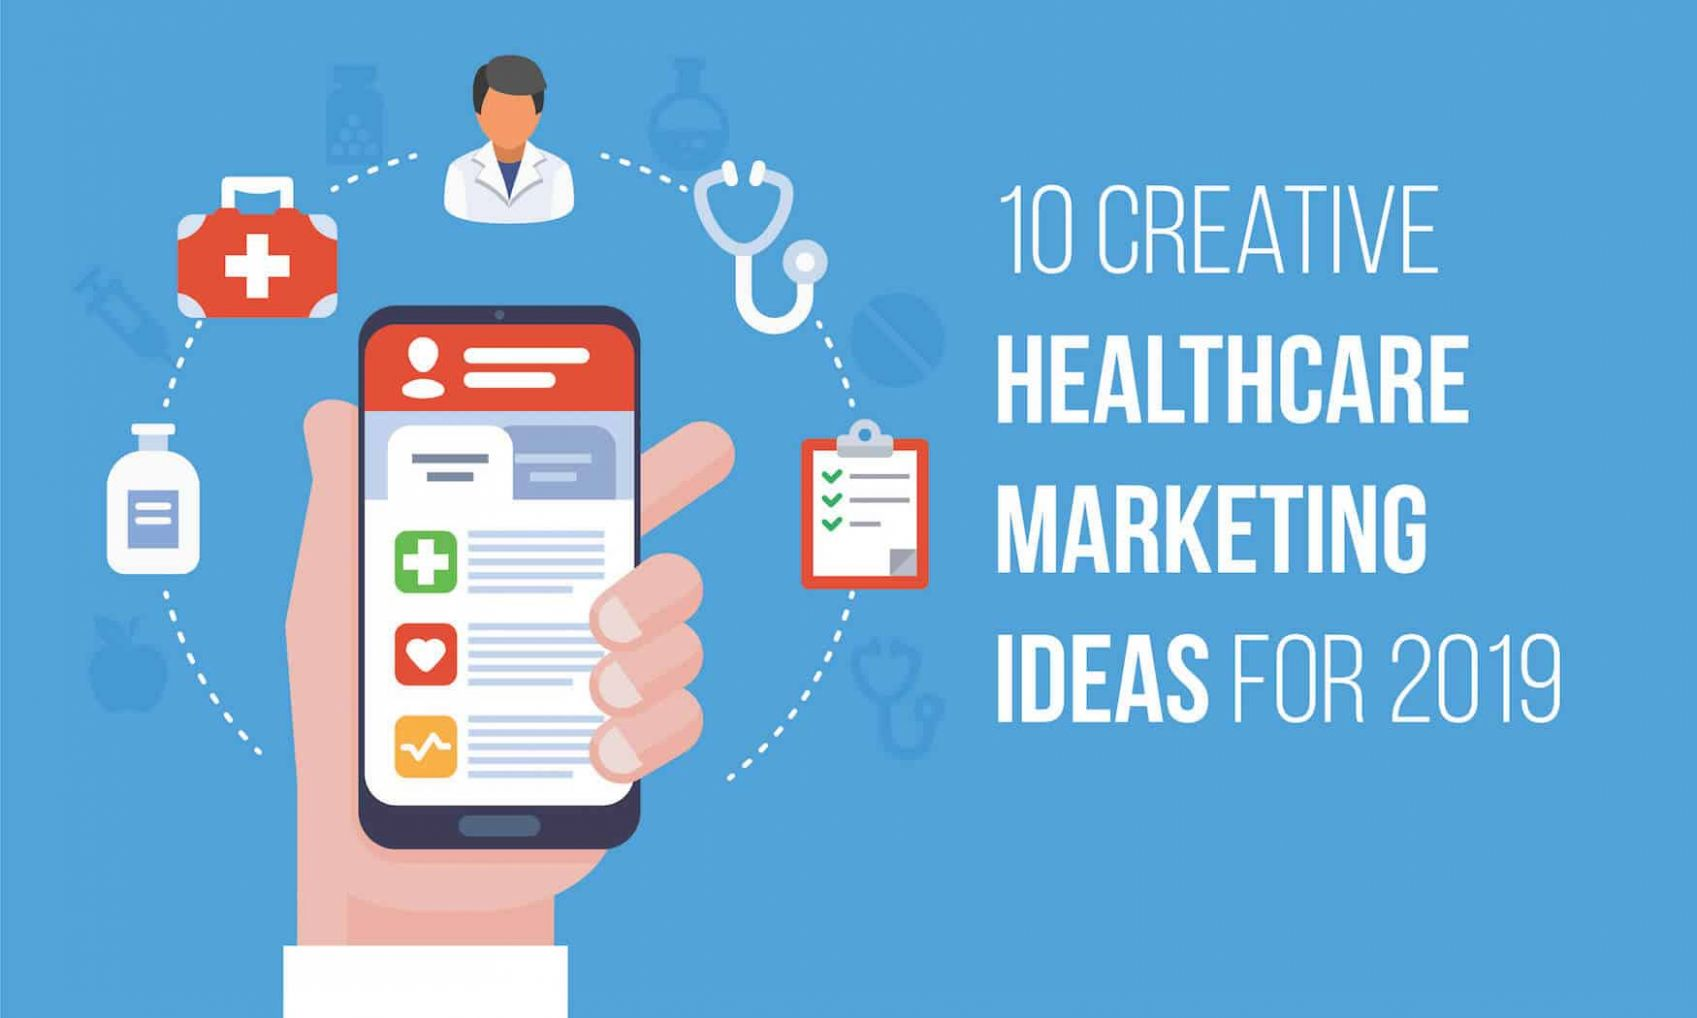 12 Innovative Healthcare Marketing Ideas 12: Ultimate Checklist - companies house inspiration healthcare